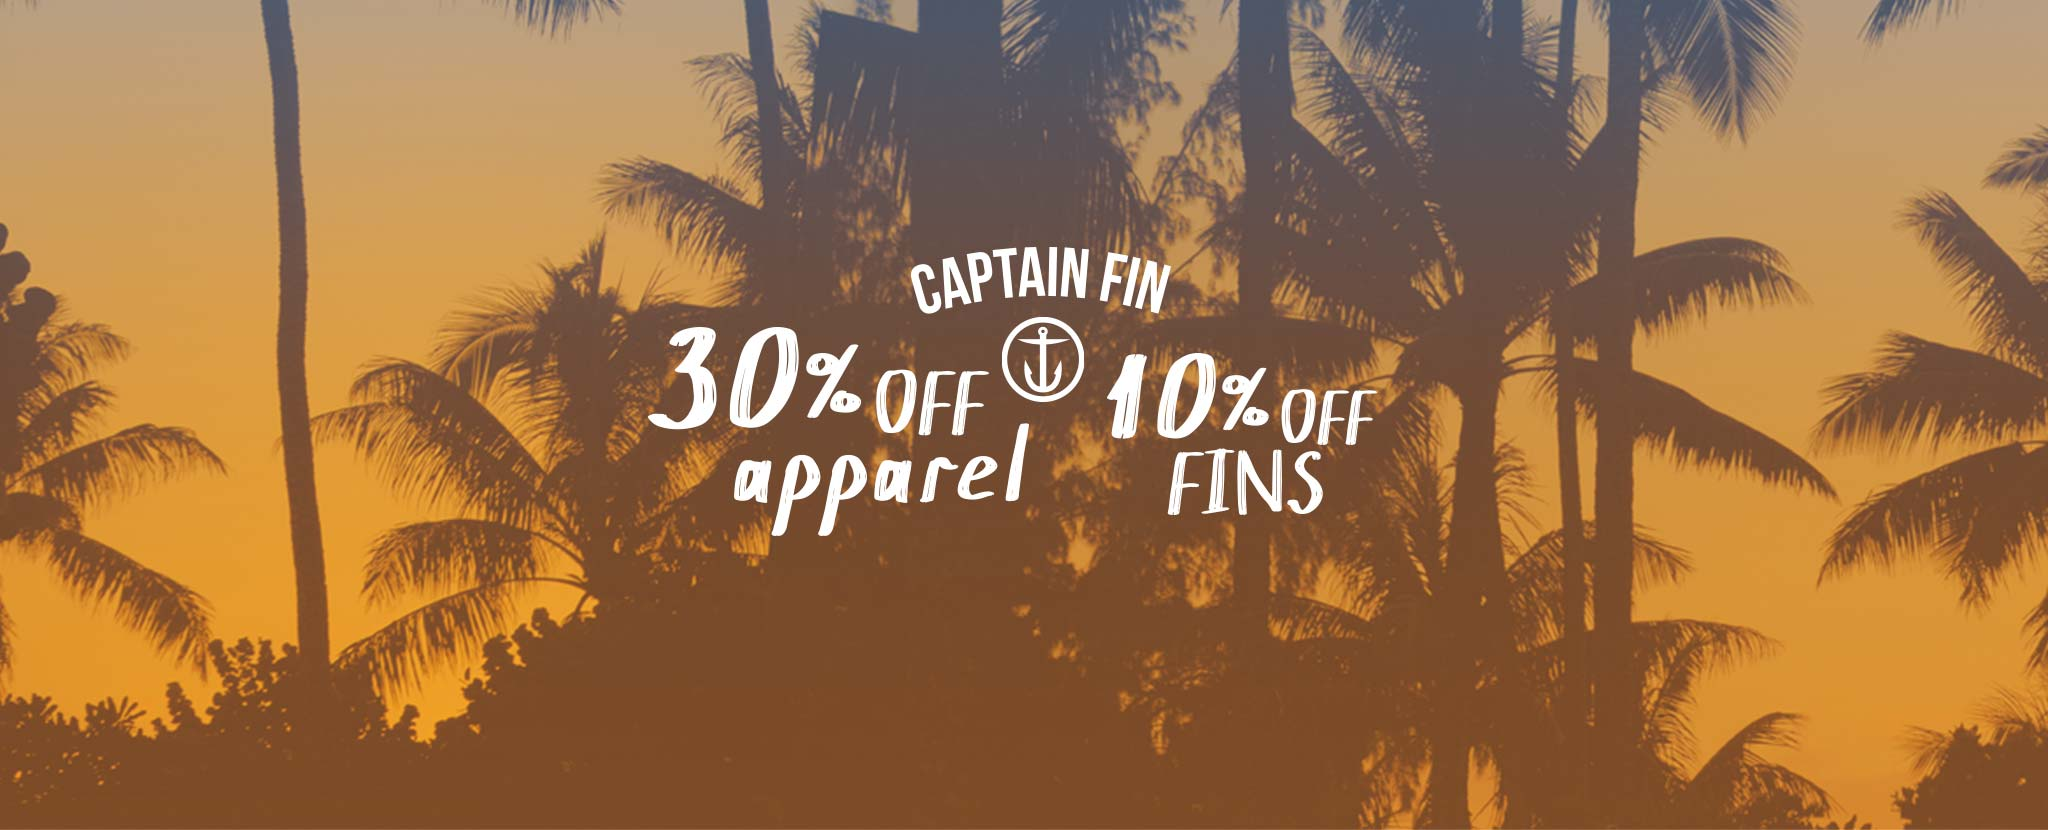 Captain Fin Deals